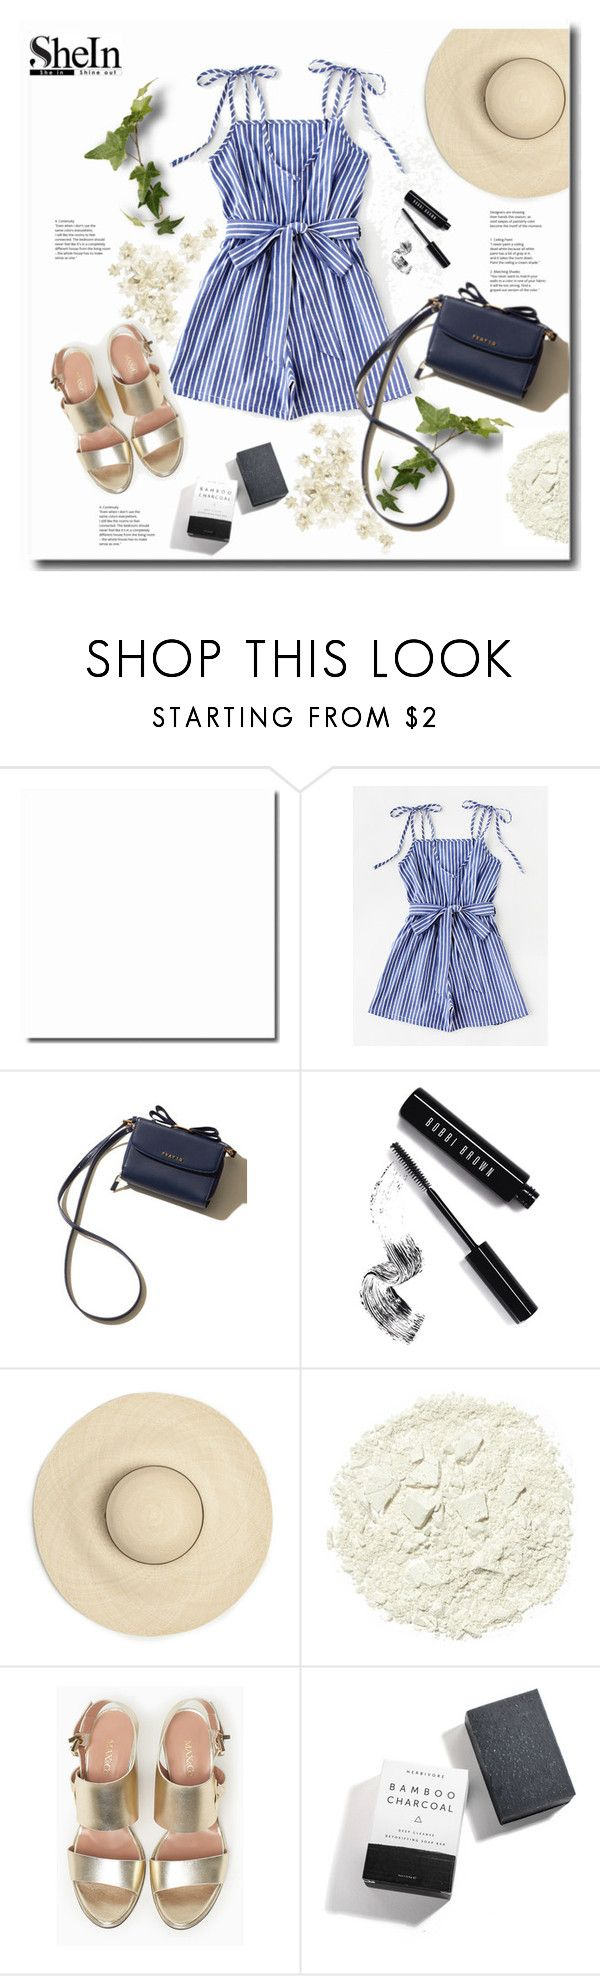 """WIN SHEIN $30 COUPON"" by kts-desilva ❤ liked on Polyvore featuring Bobbi Brown Cosmetics, Illamasqua, Max&Co. and Herbivore"